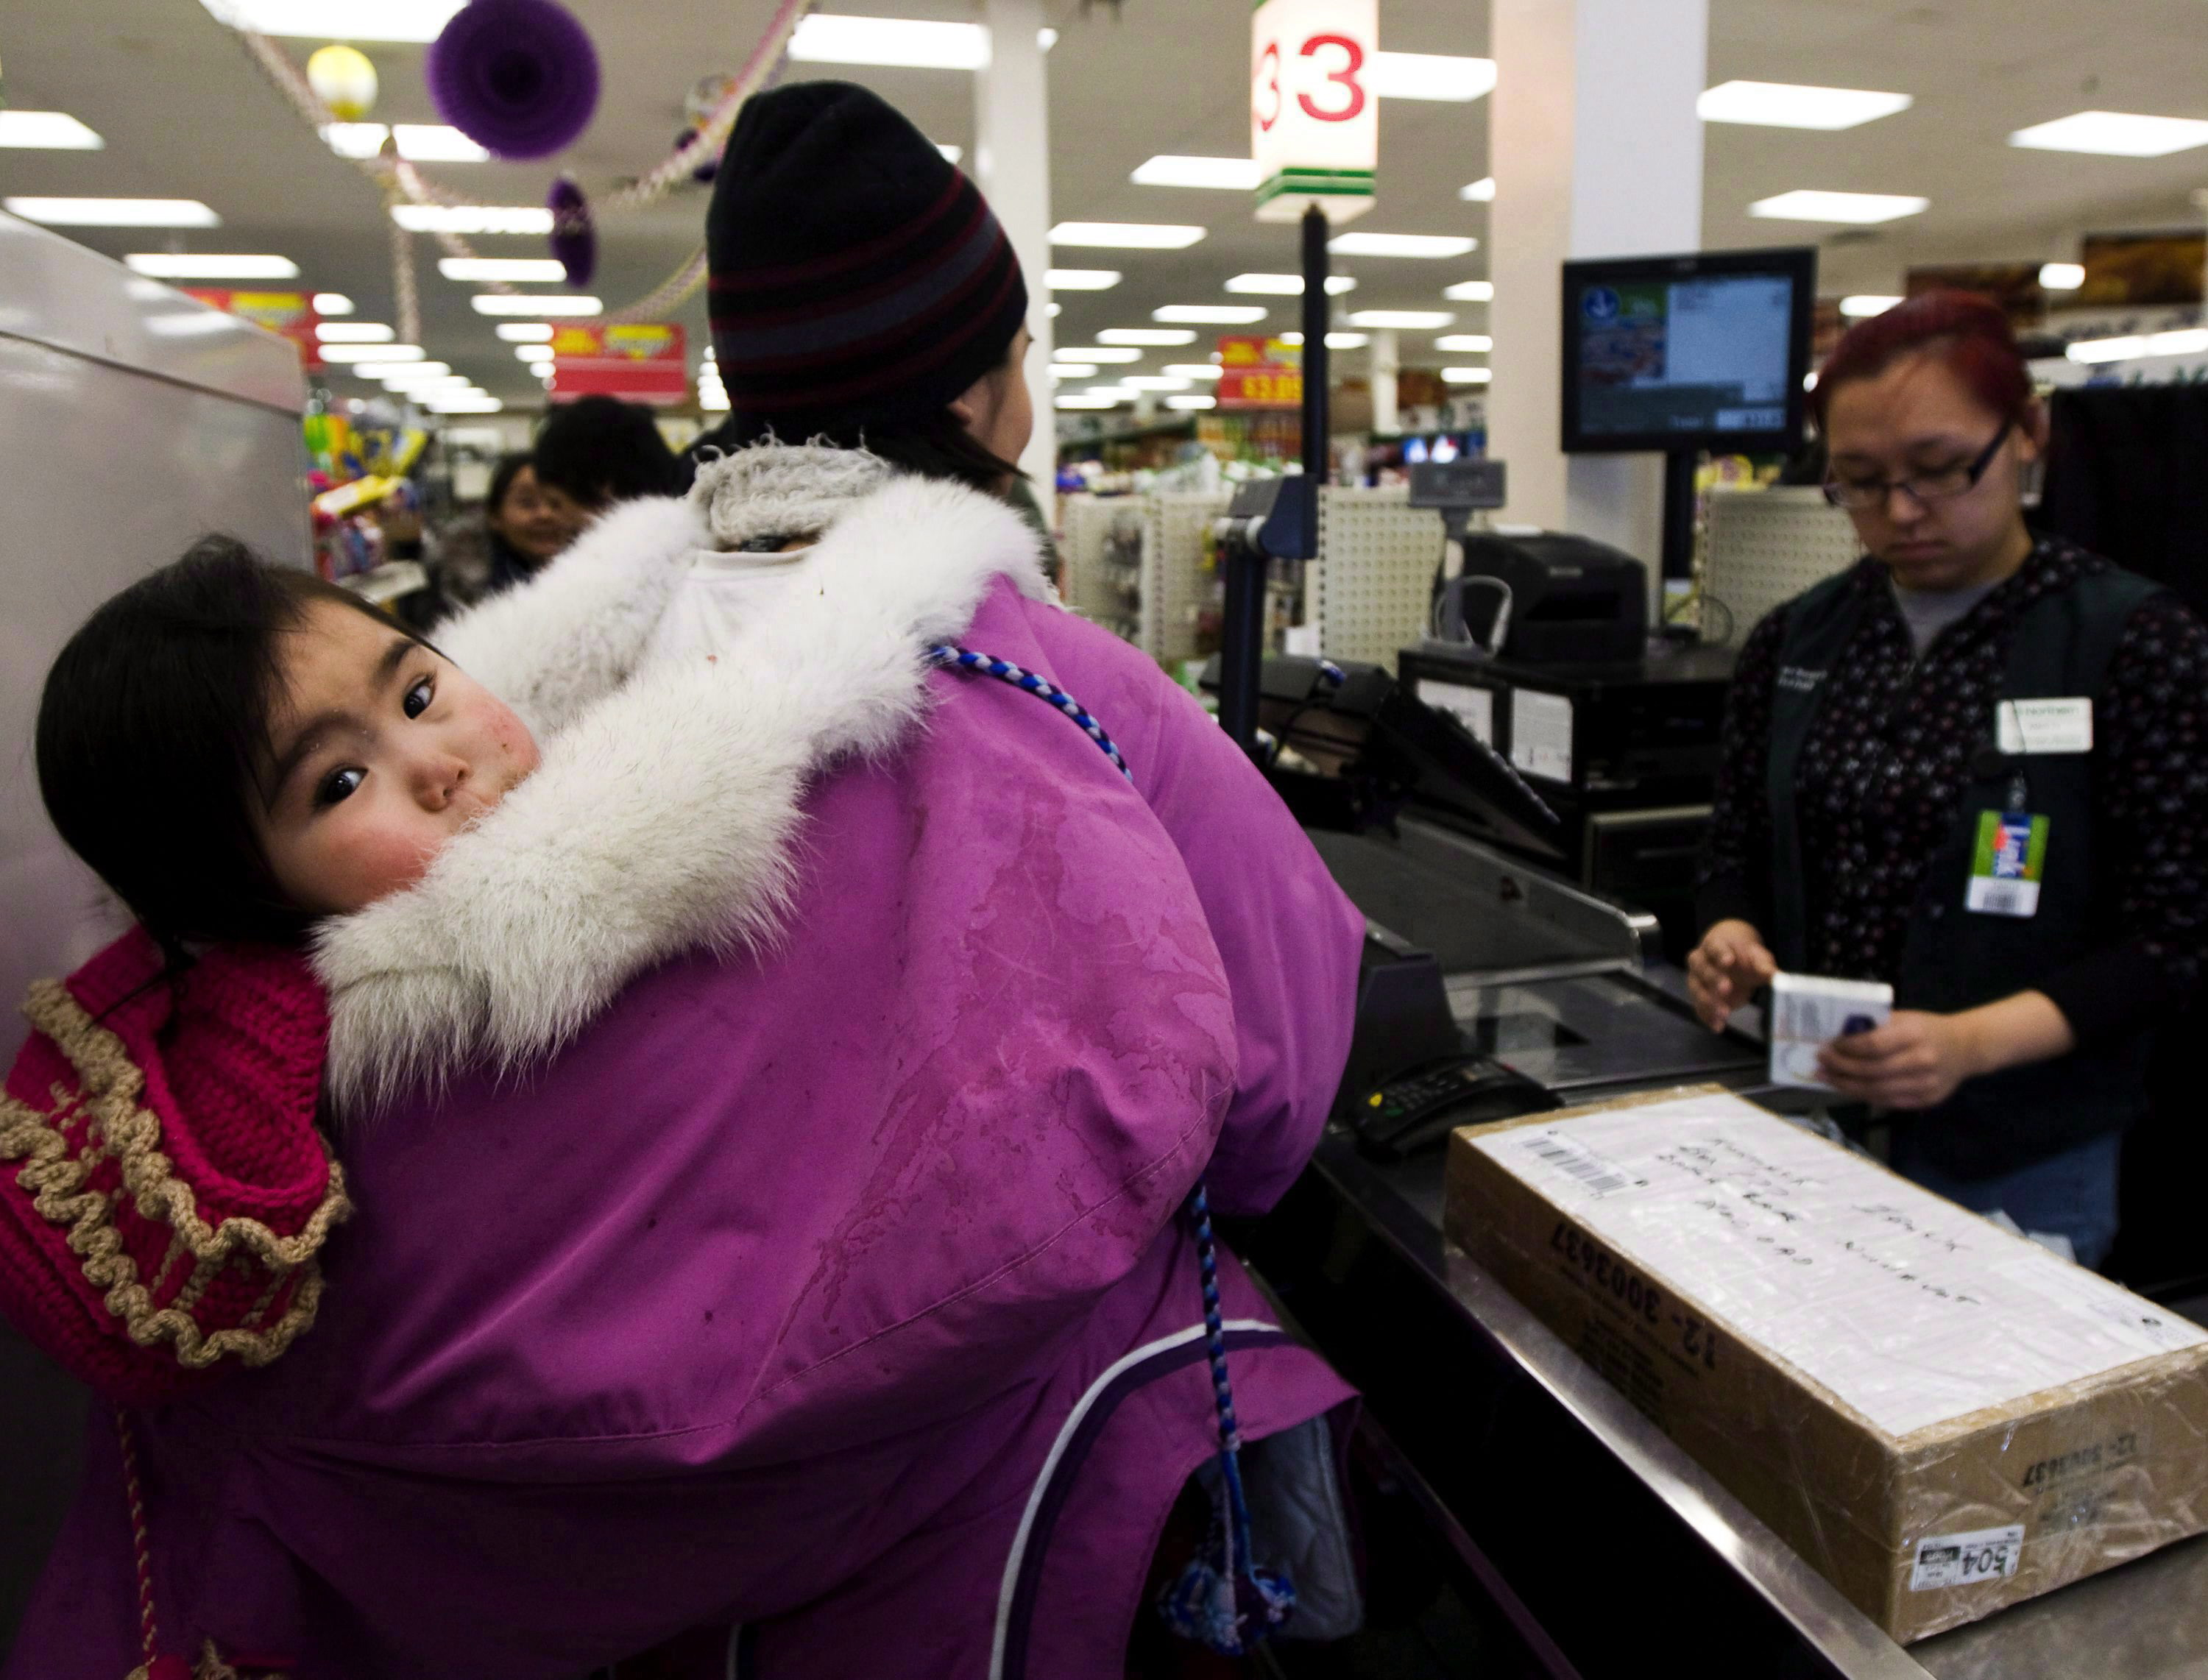 A mother pays for groceries in Baker Lake, Nunavut on March 25, 2009. Canada's auditor general said this year that the federal government can't tell if northerners are reaping the full benefit of a program aimed at helping to offset the high cost of food in the North. (Nathan Denette / The Canadian Press)